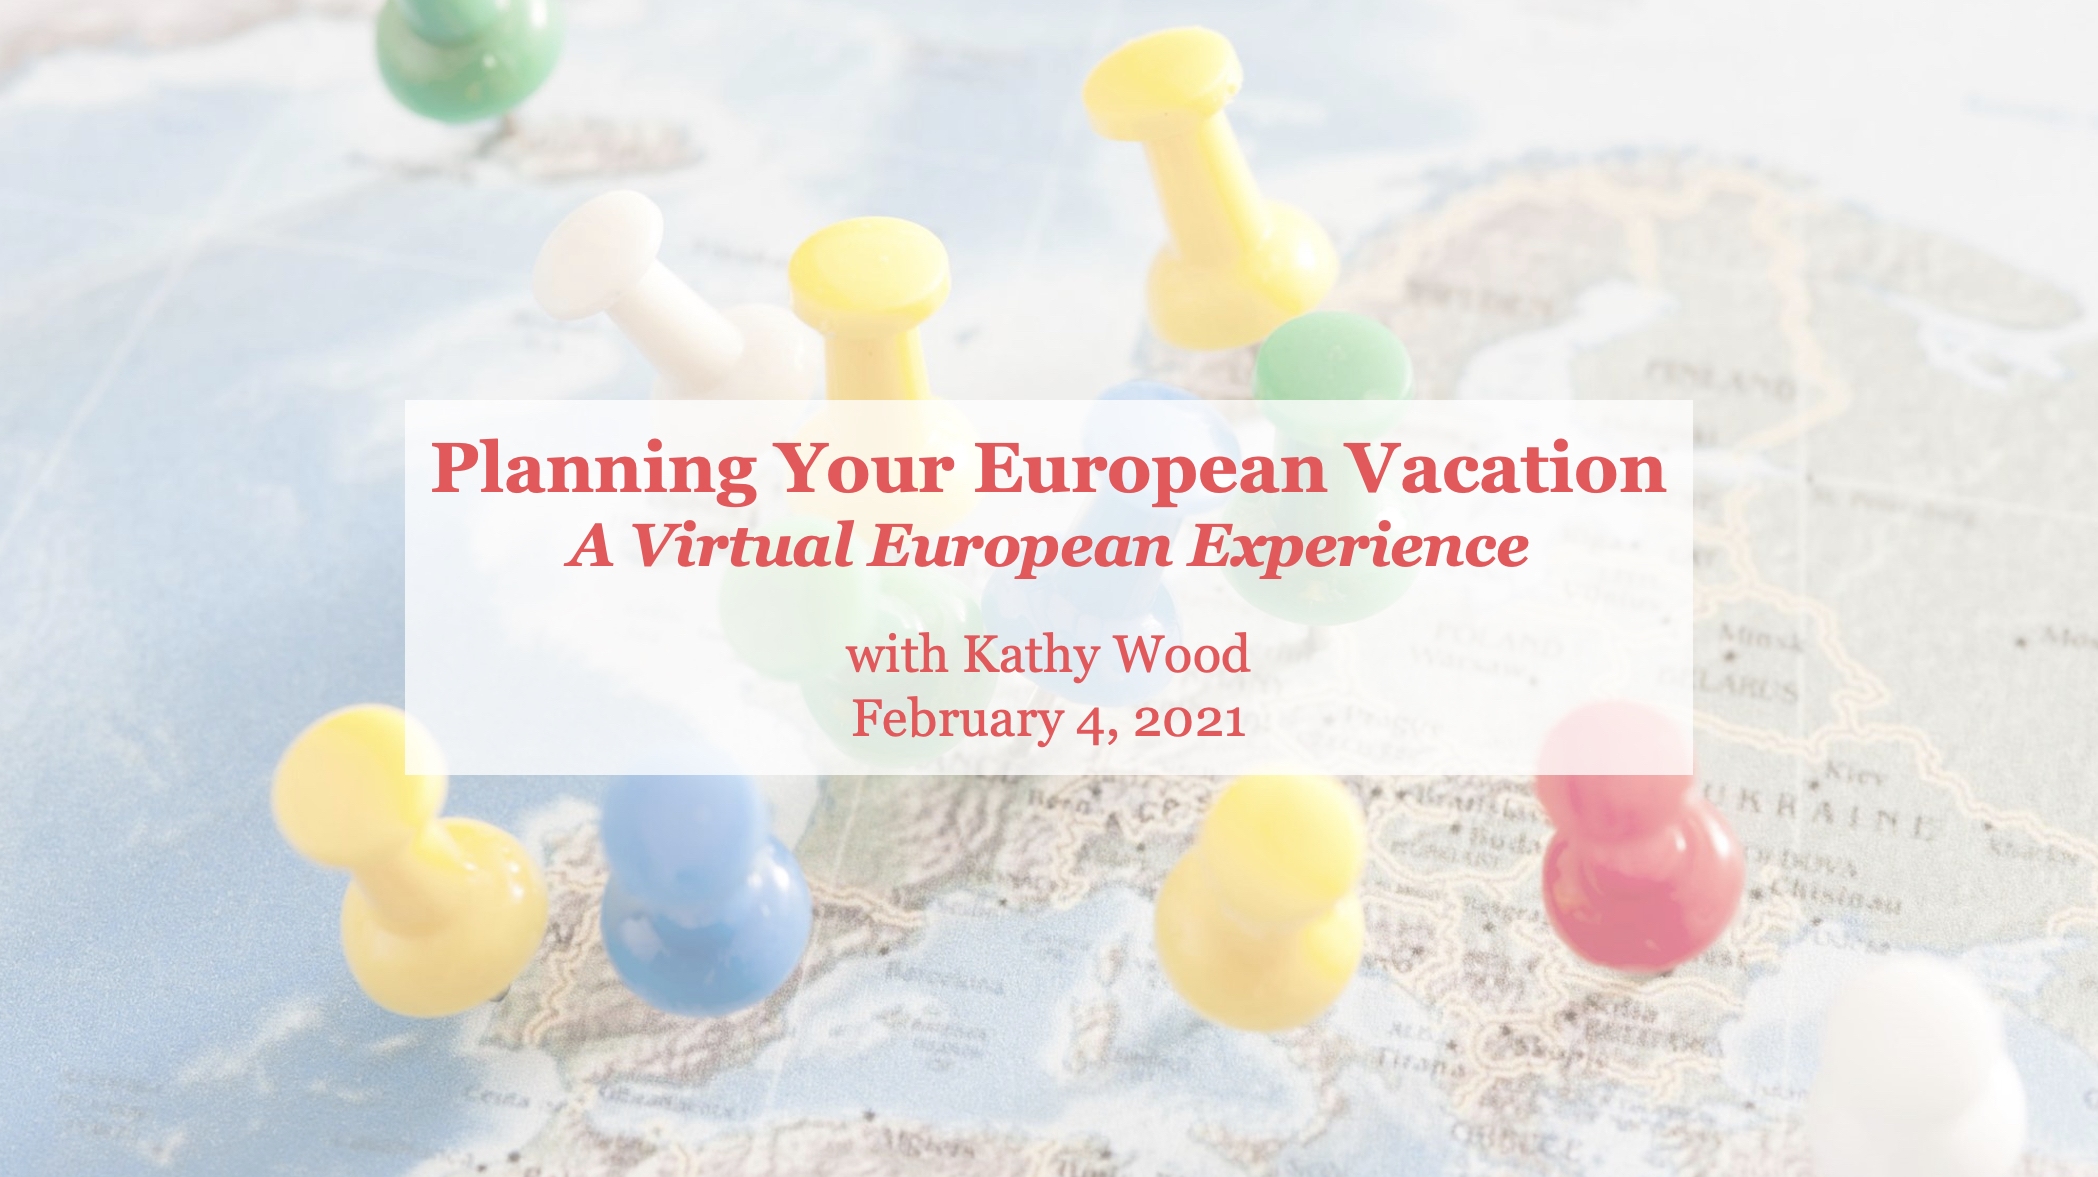 Planning Your European Vacation